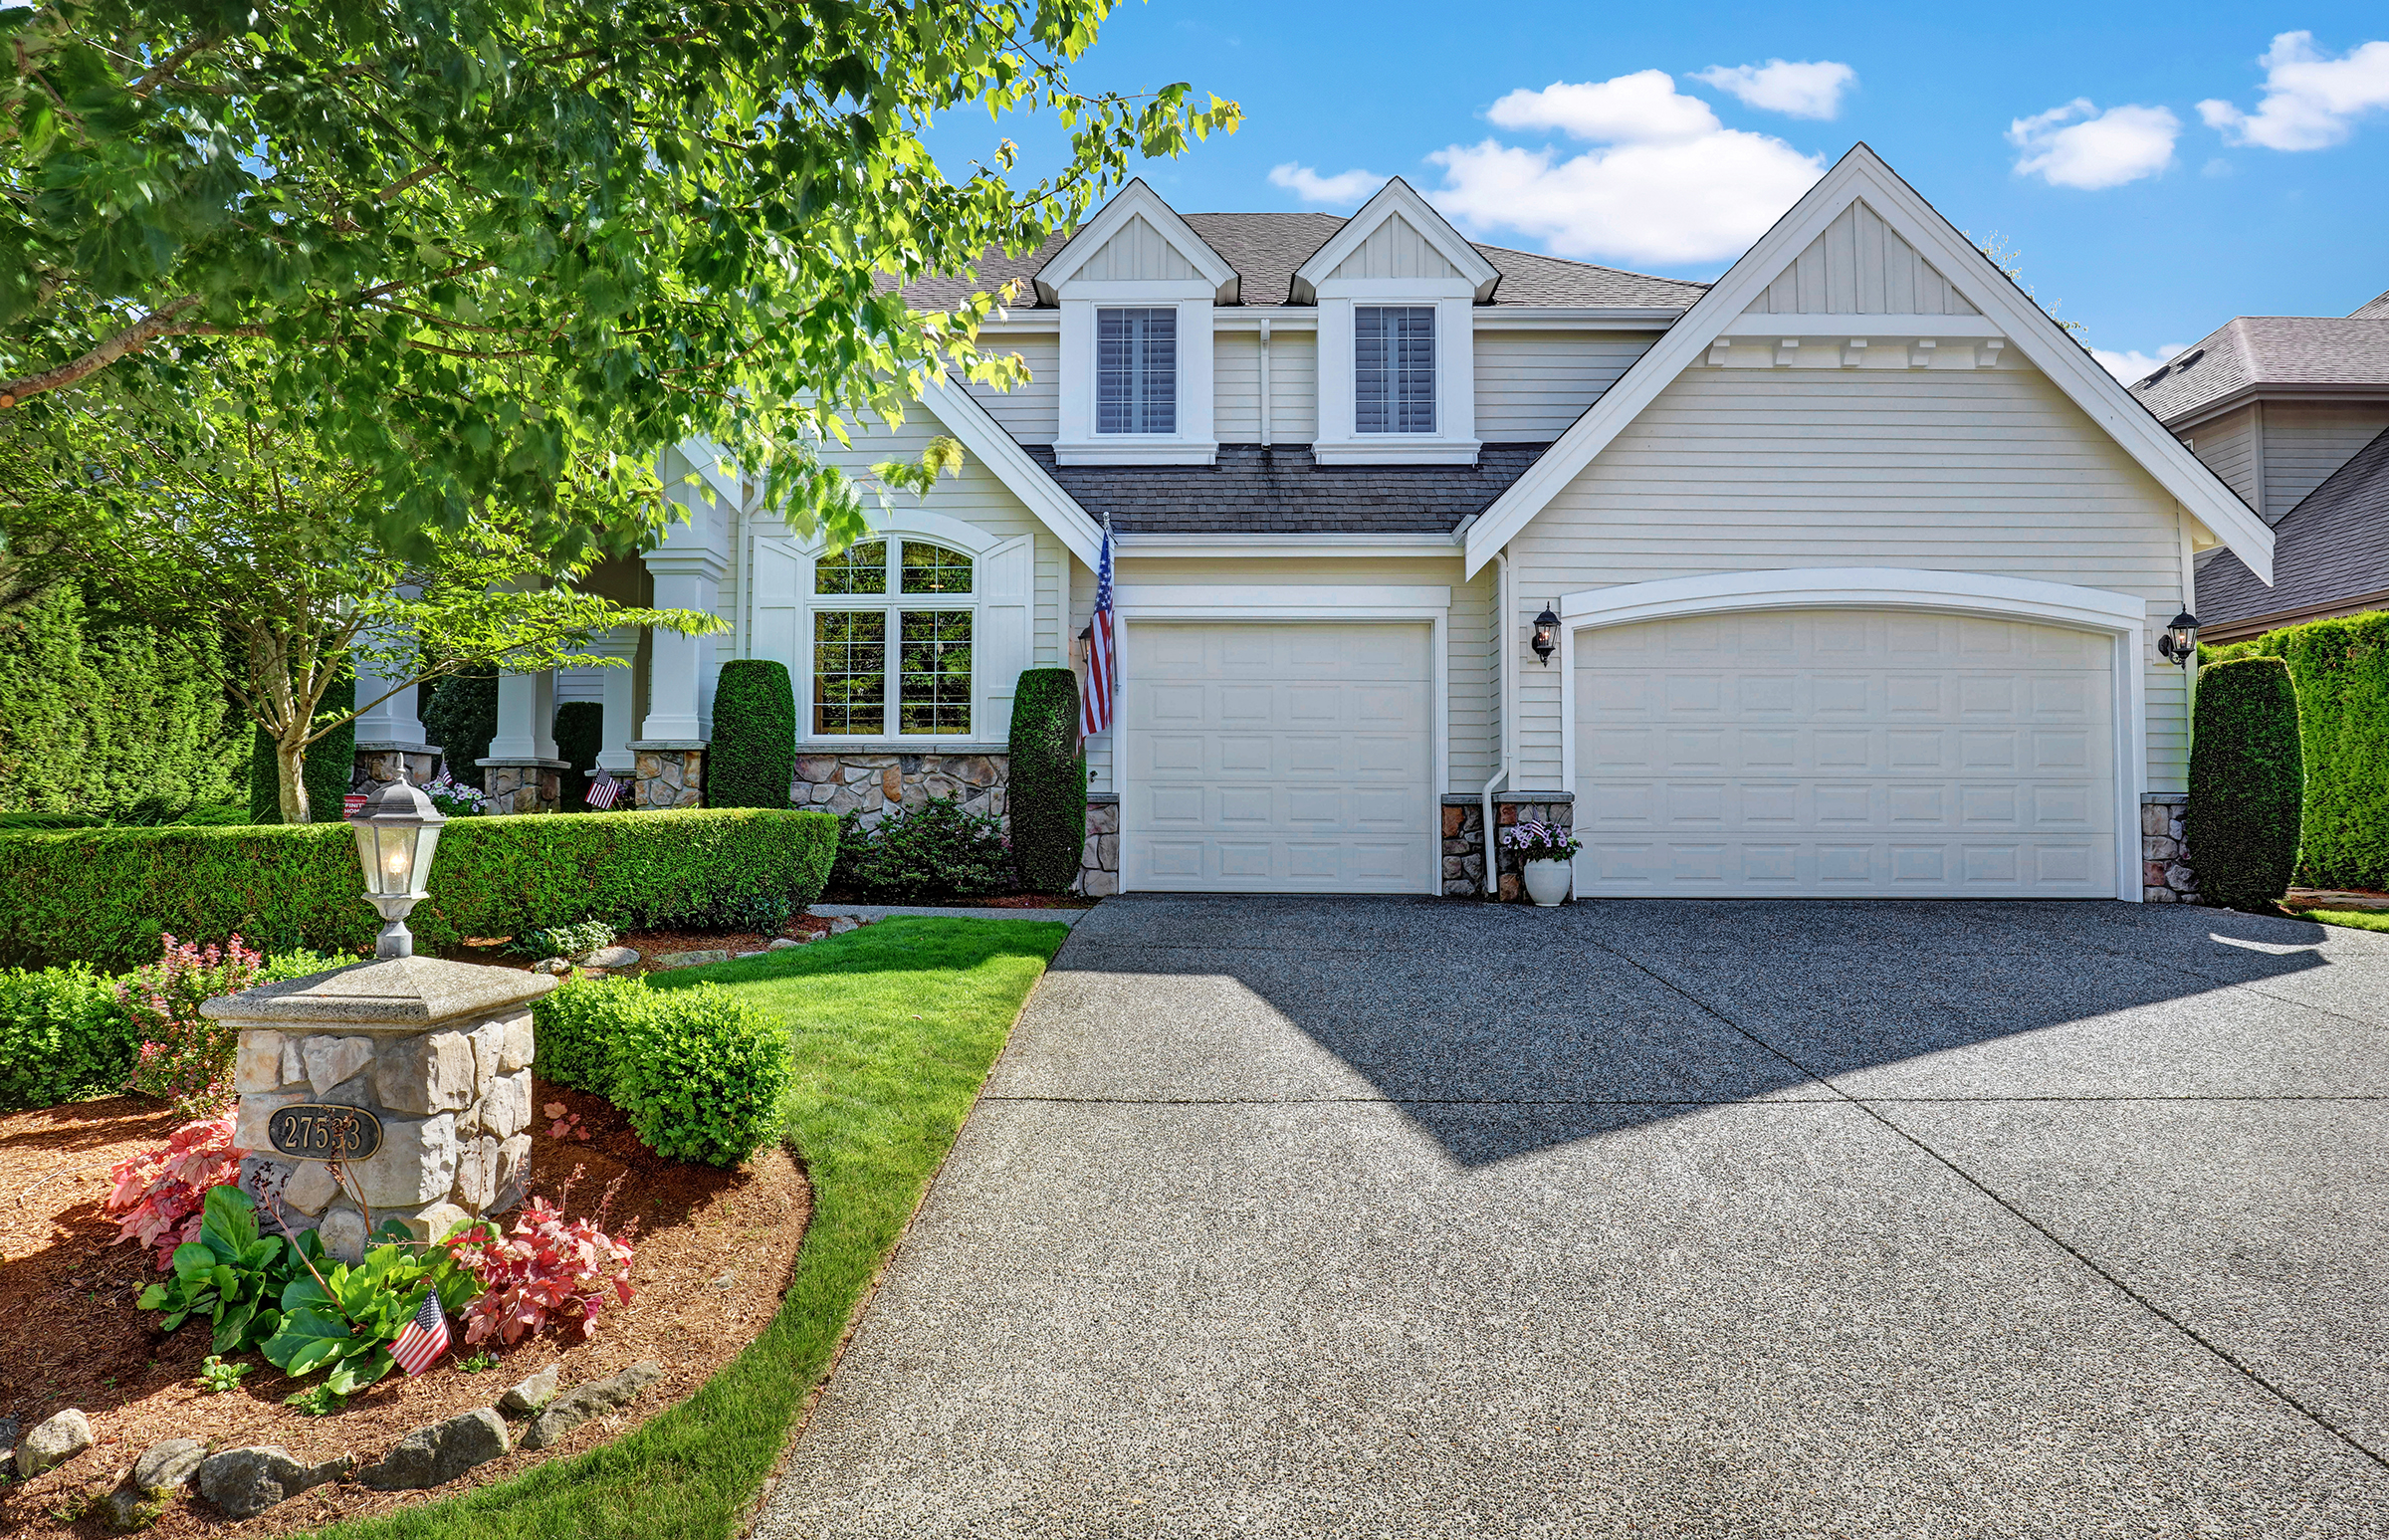 Smashing in Sammamish - $950,000